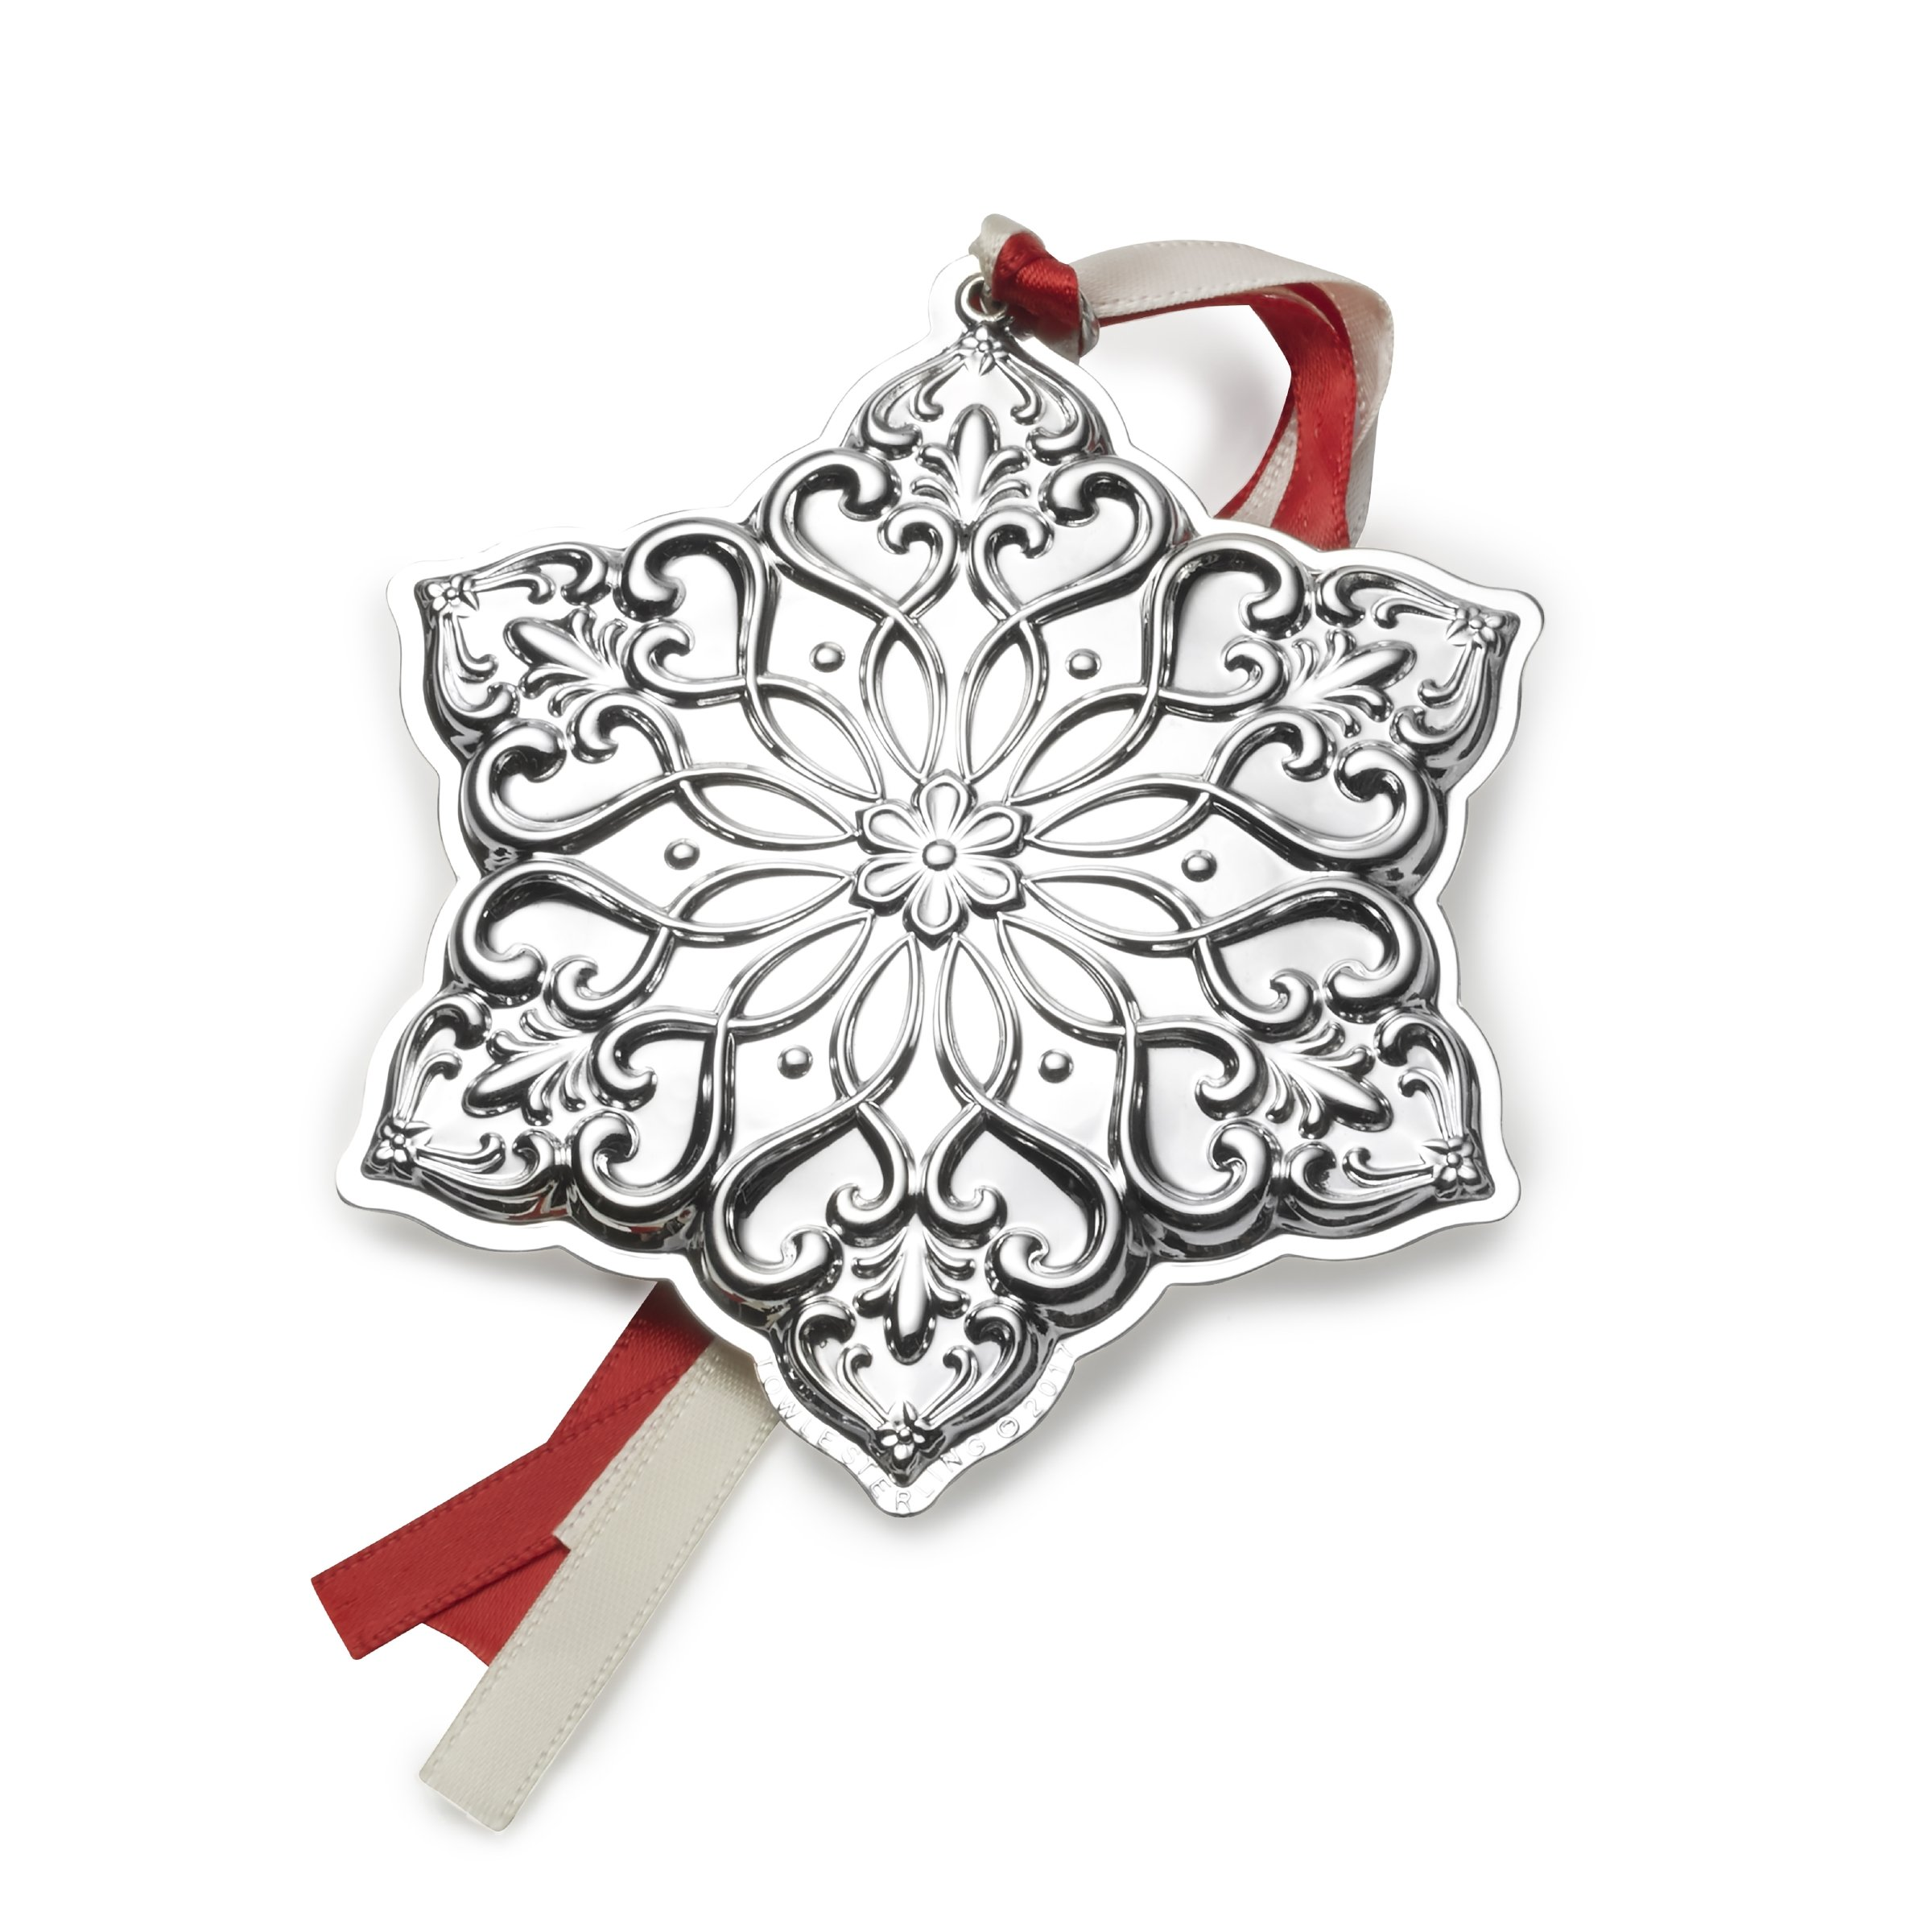 Towle 2017 Sterling Silver Old Master Snowflake Ornament, 28th Edition by Towle